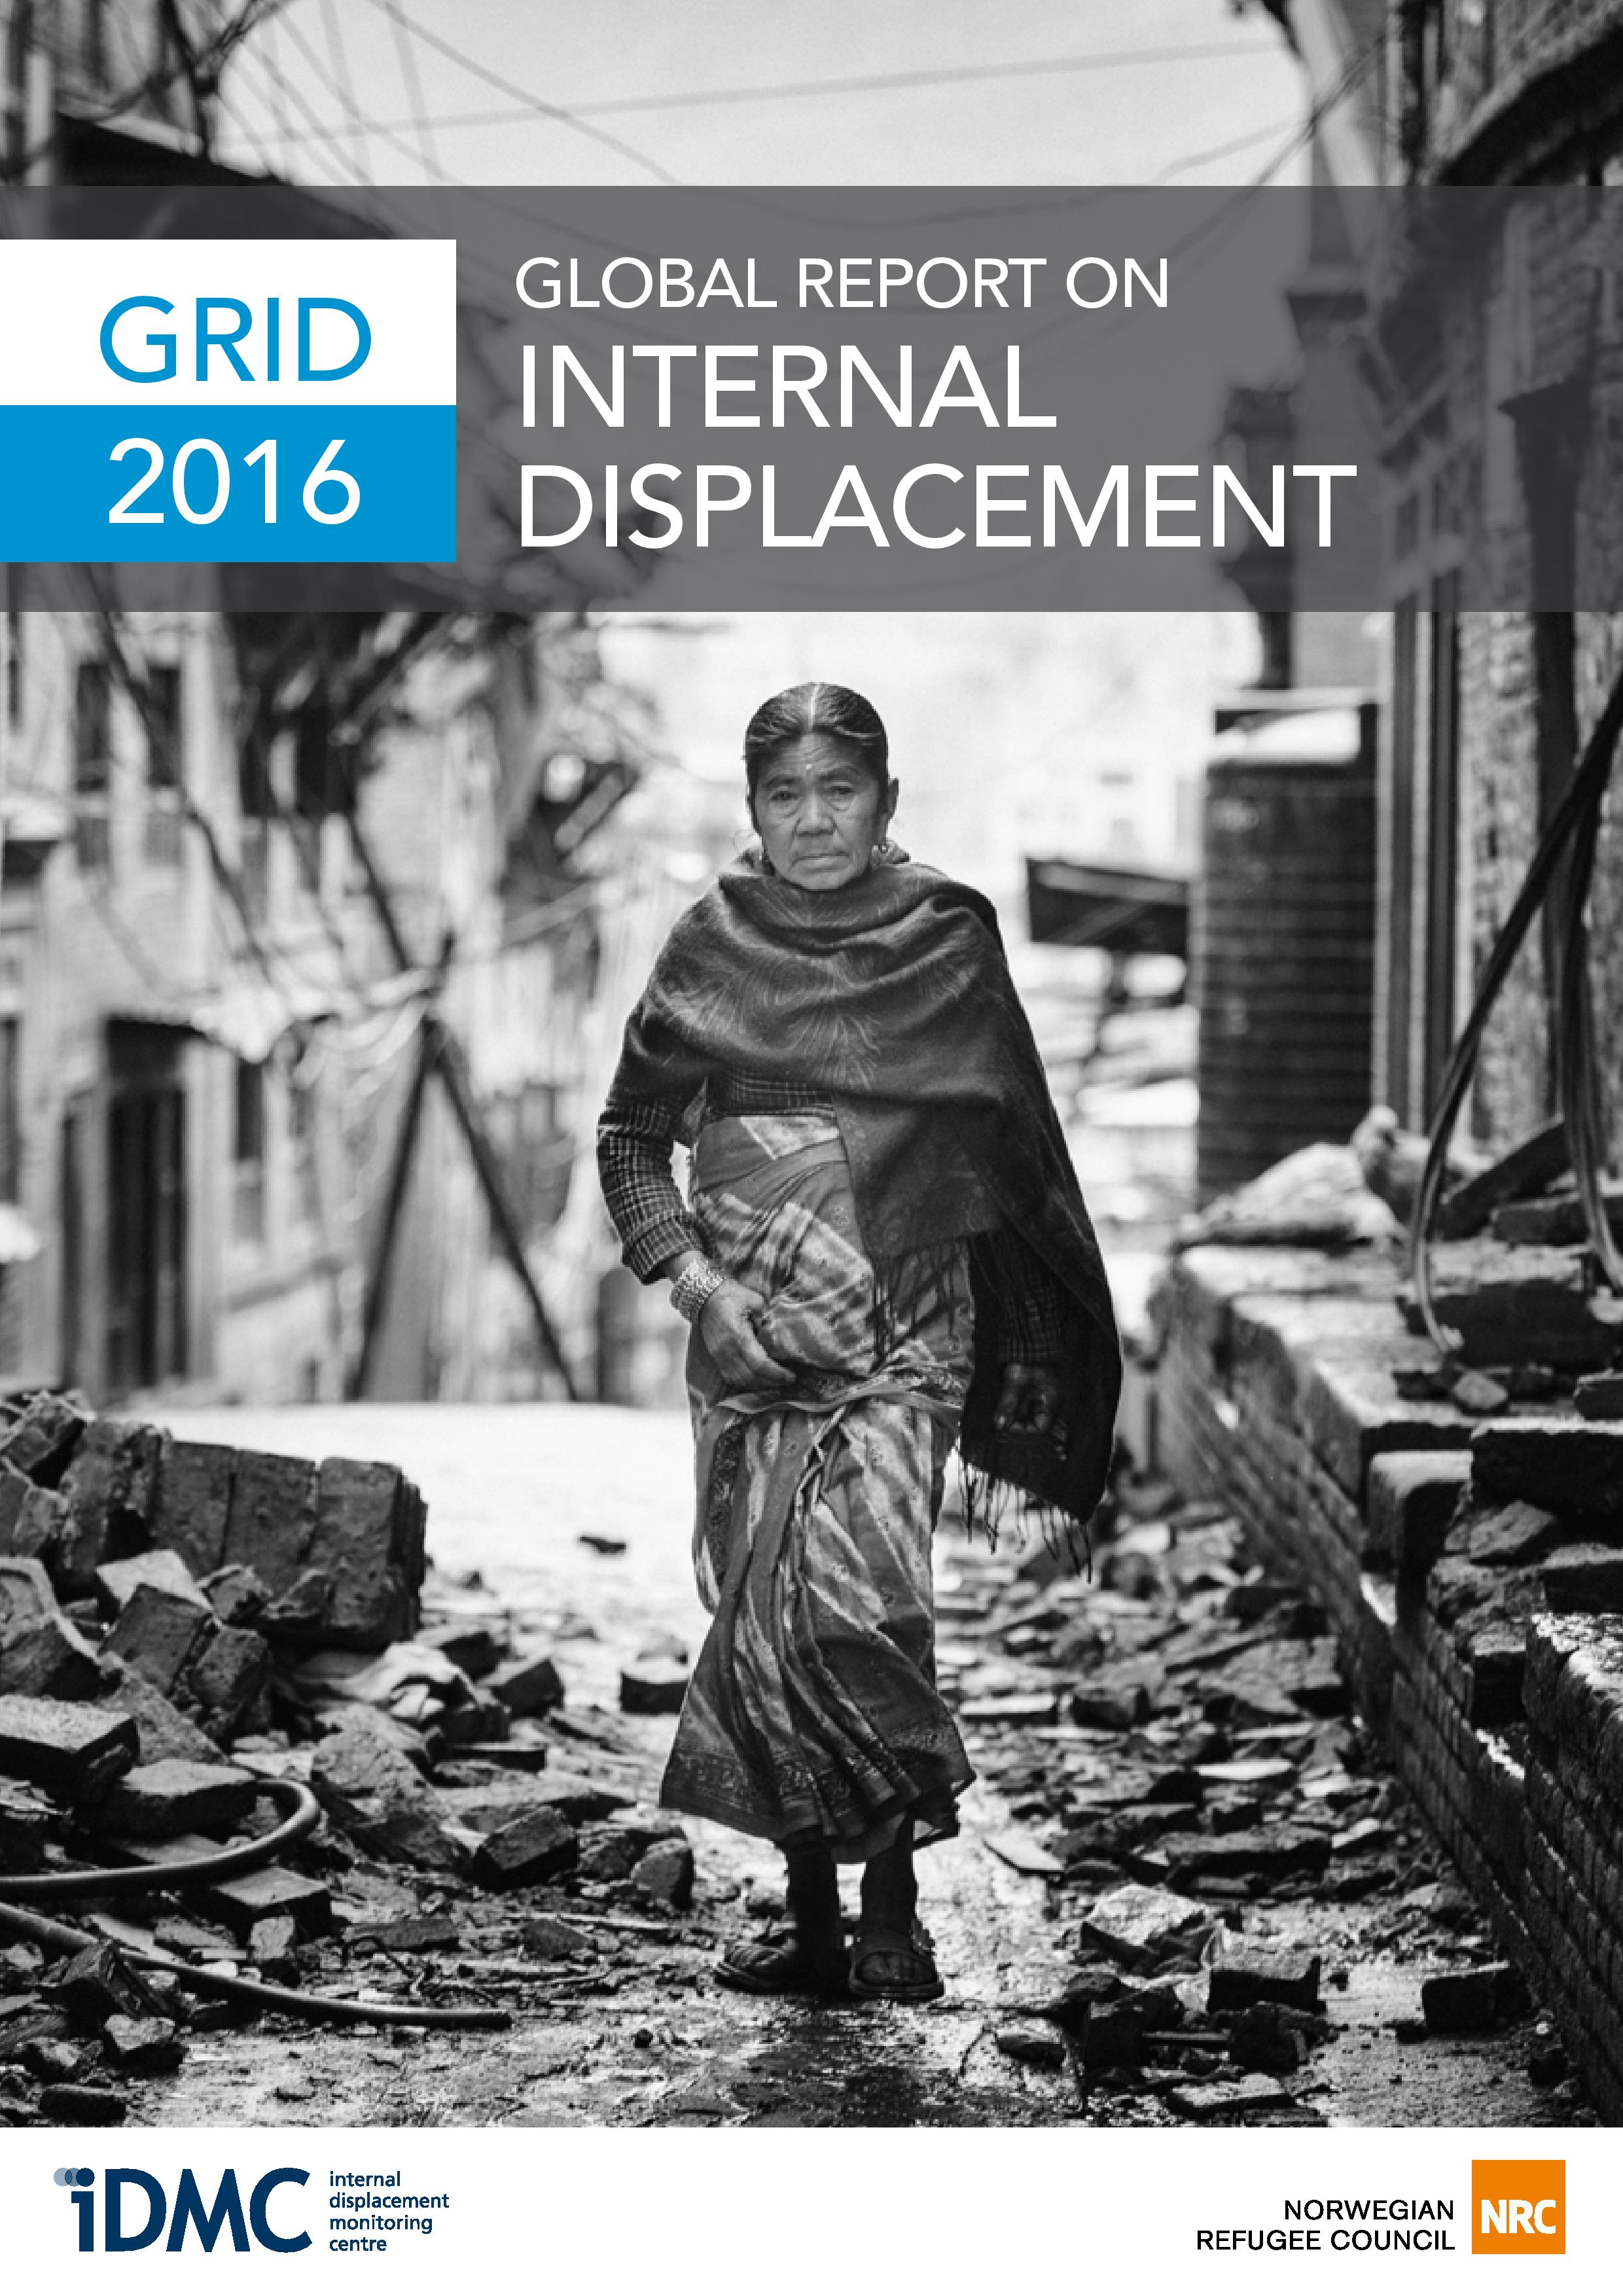 2016 Global Report On Internal Displacement (GRID)